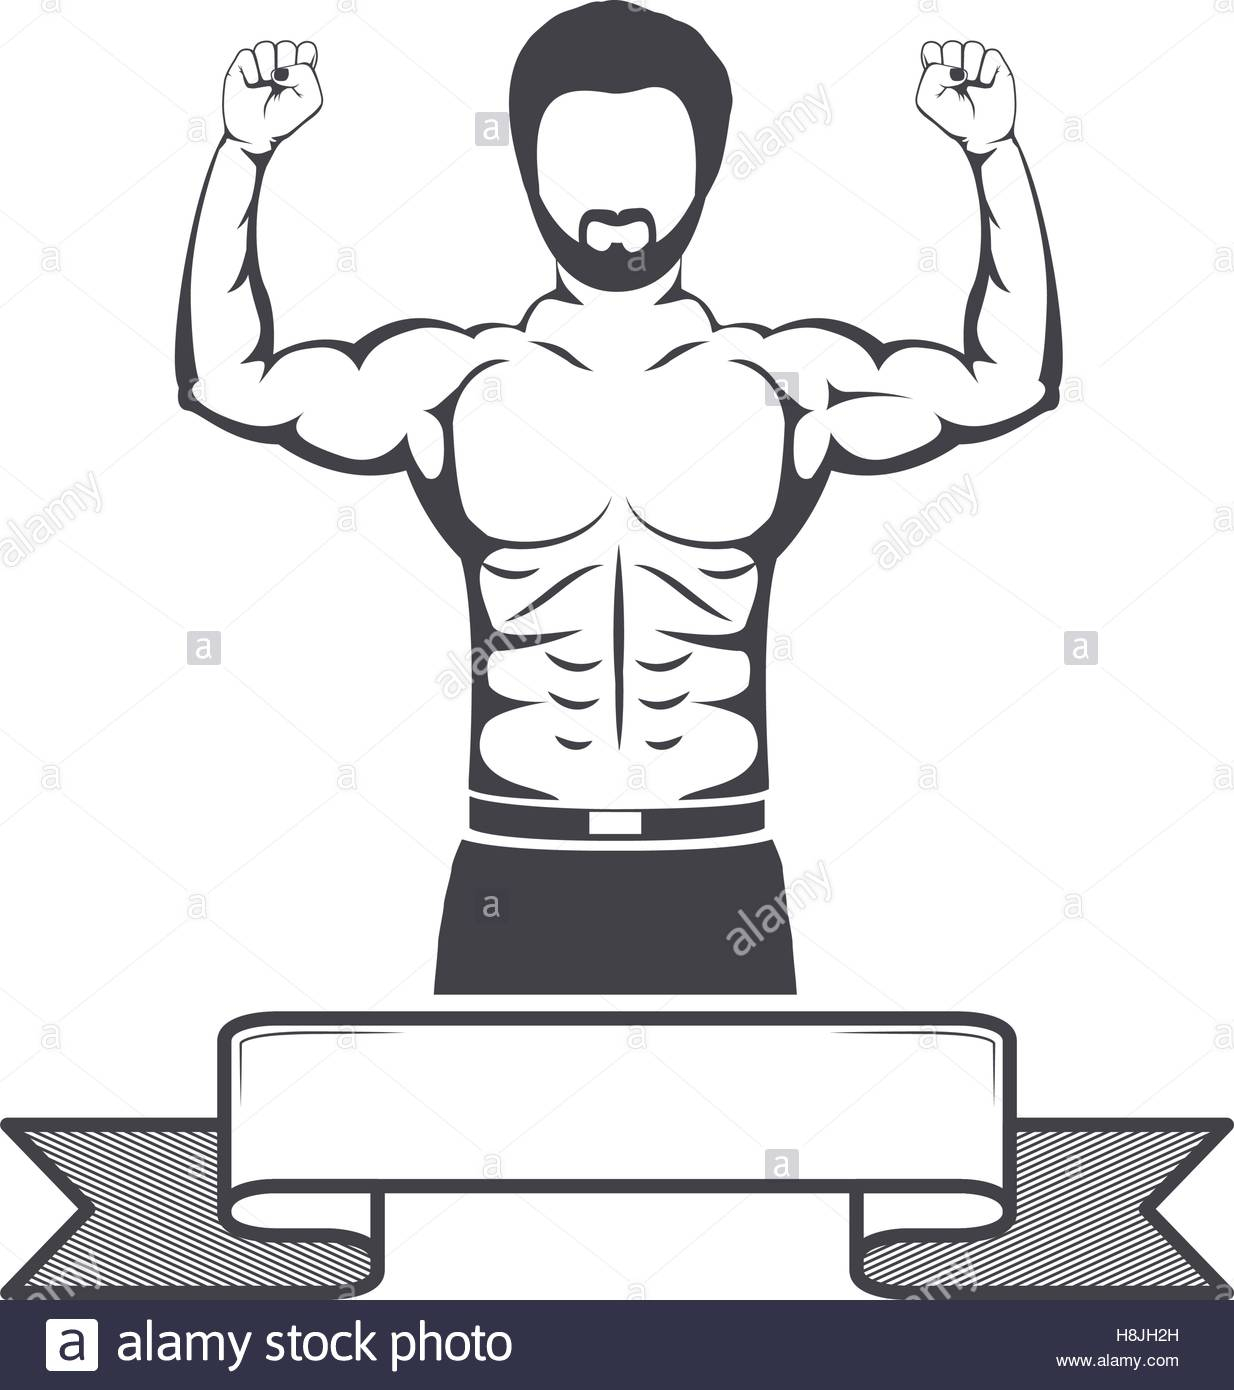 1234x1390 Muscular Body Label Vectors Silhouette Half Body Muscle Man With